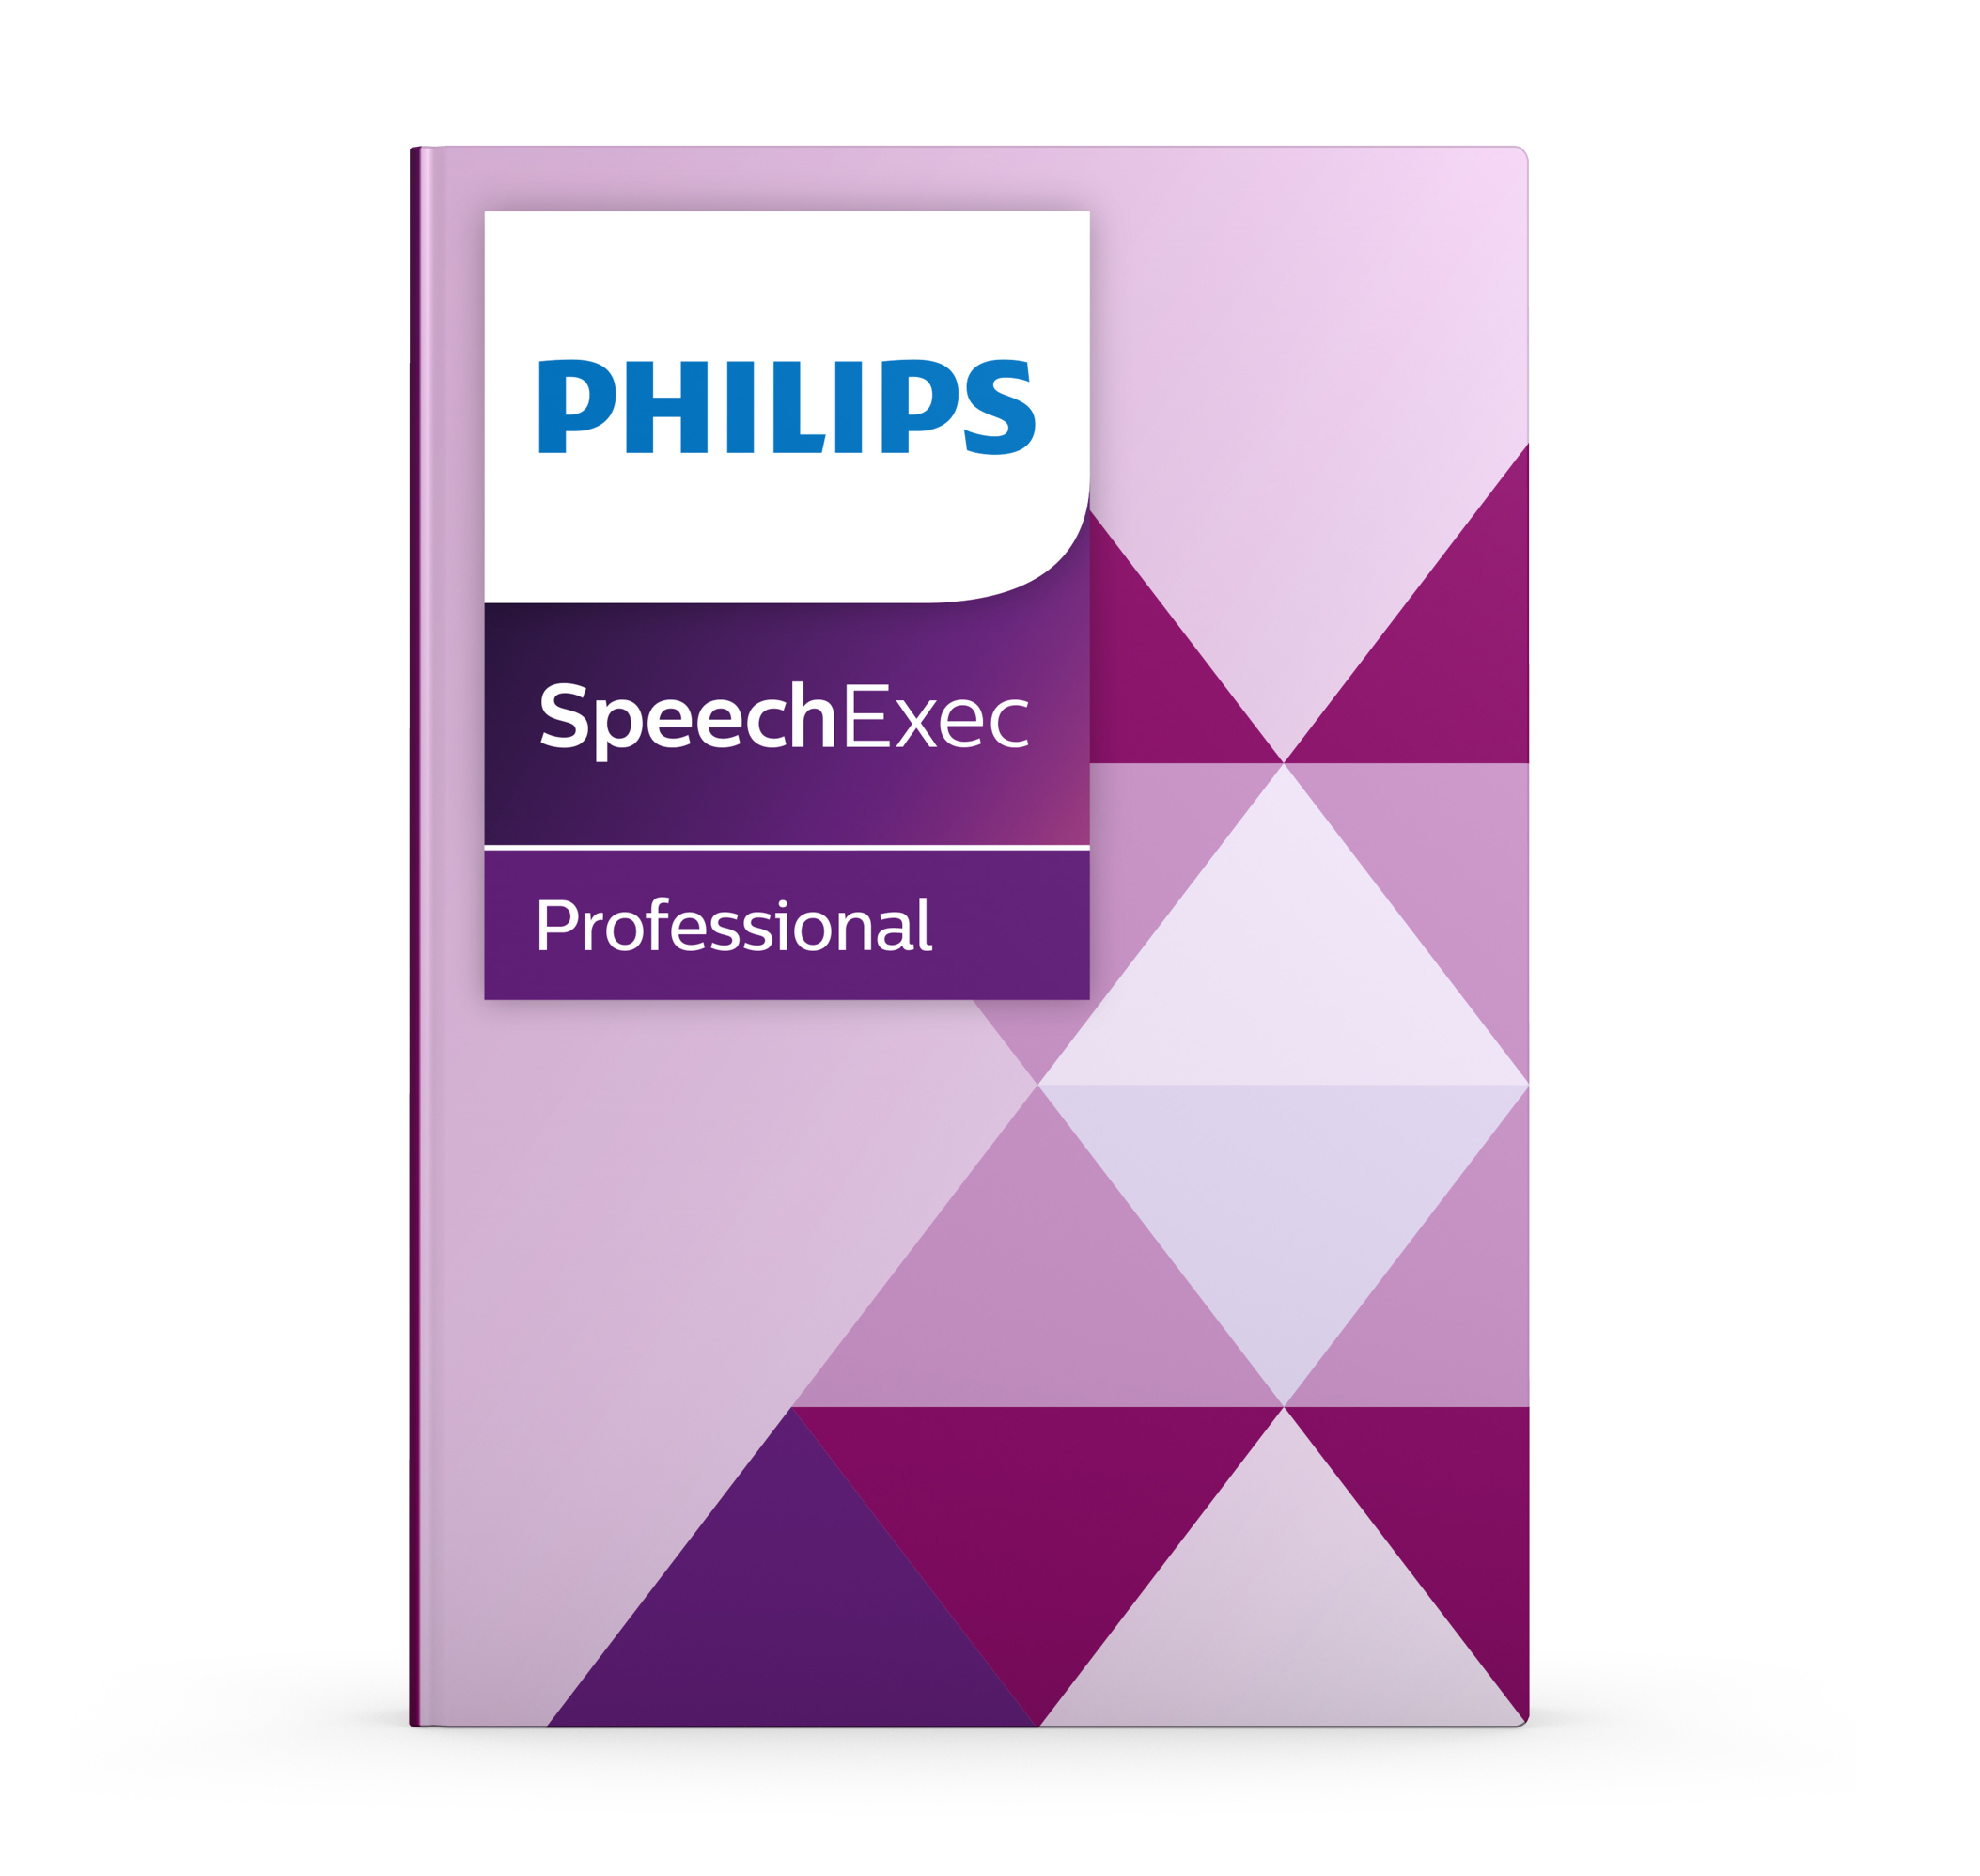 Philips SpeechExec Pro (Photo: Business Wire)